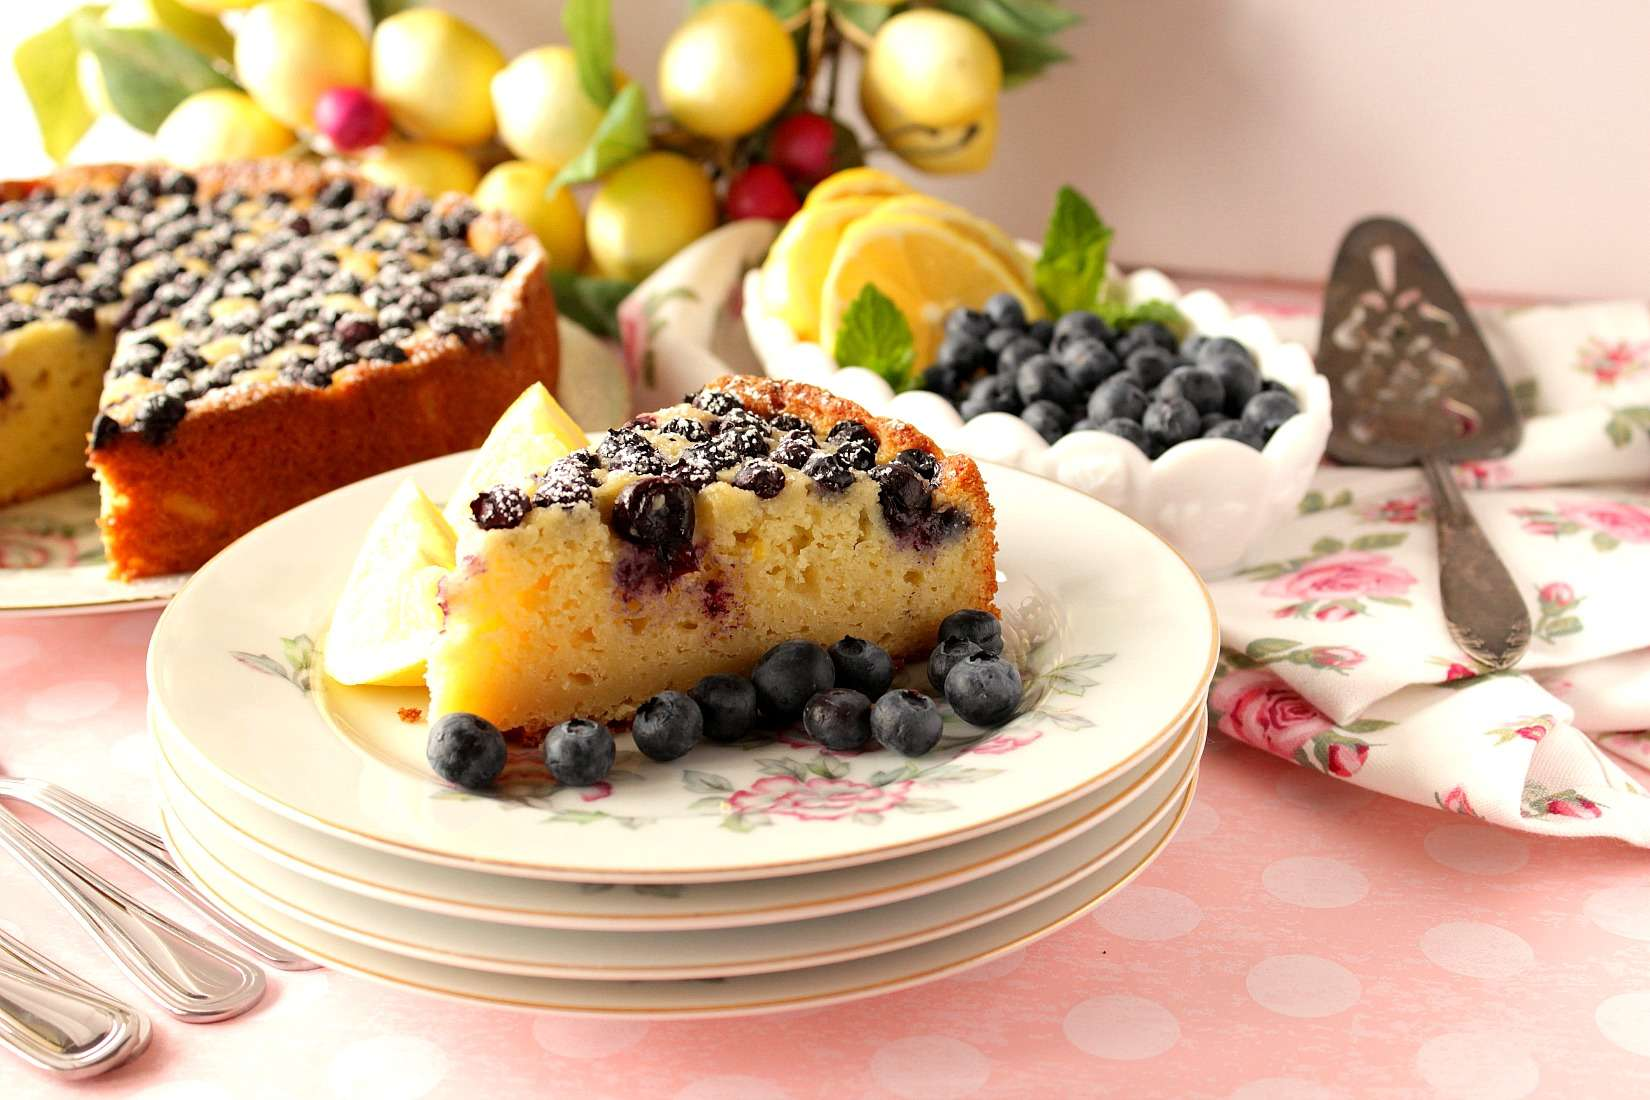 Lemon Ricotta Cake with Blueberries